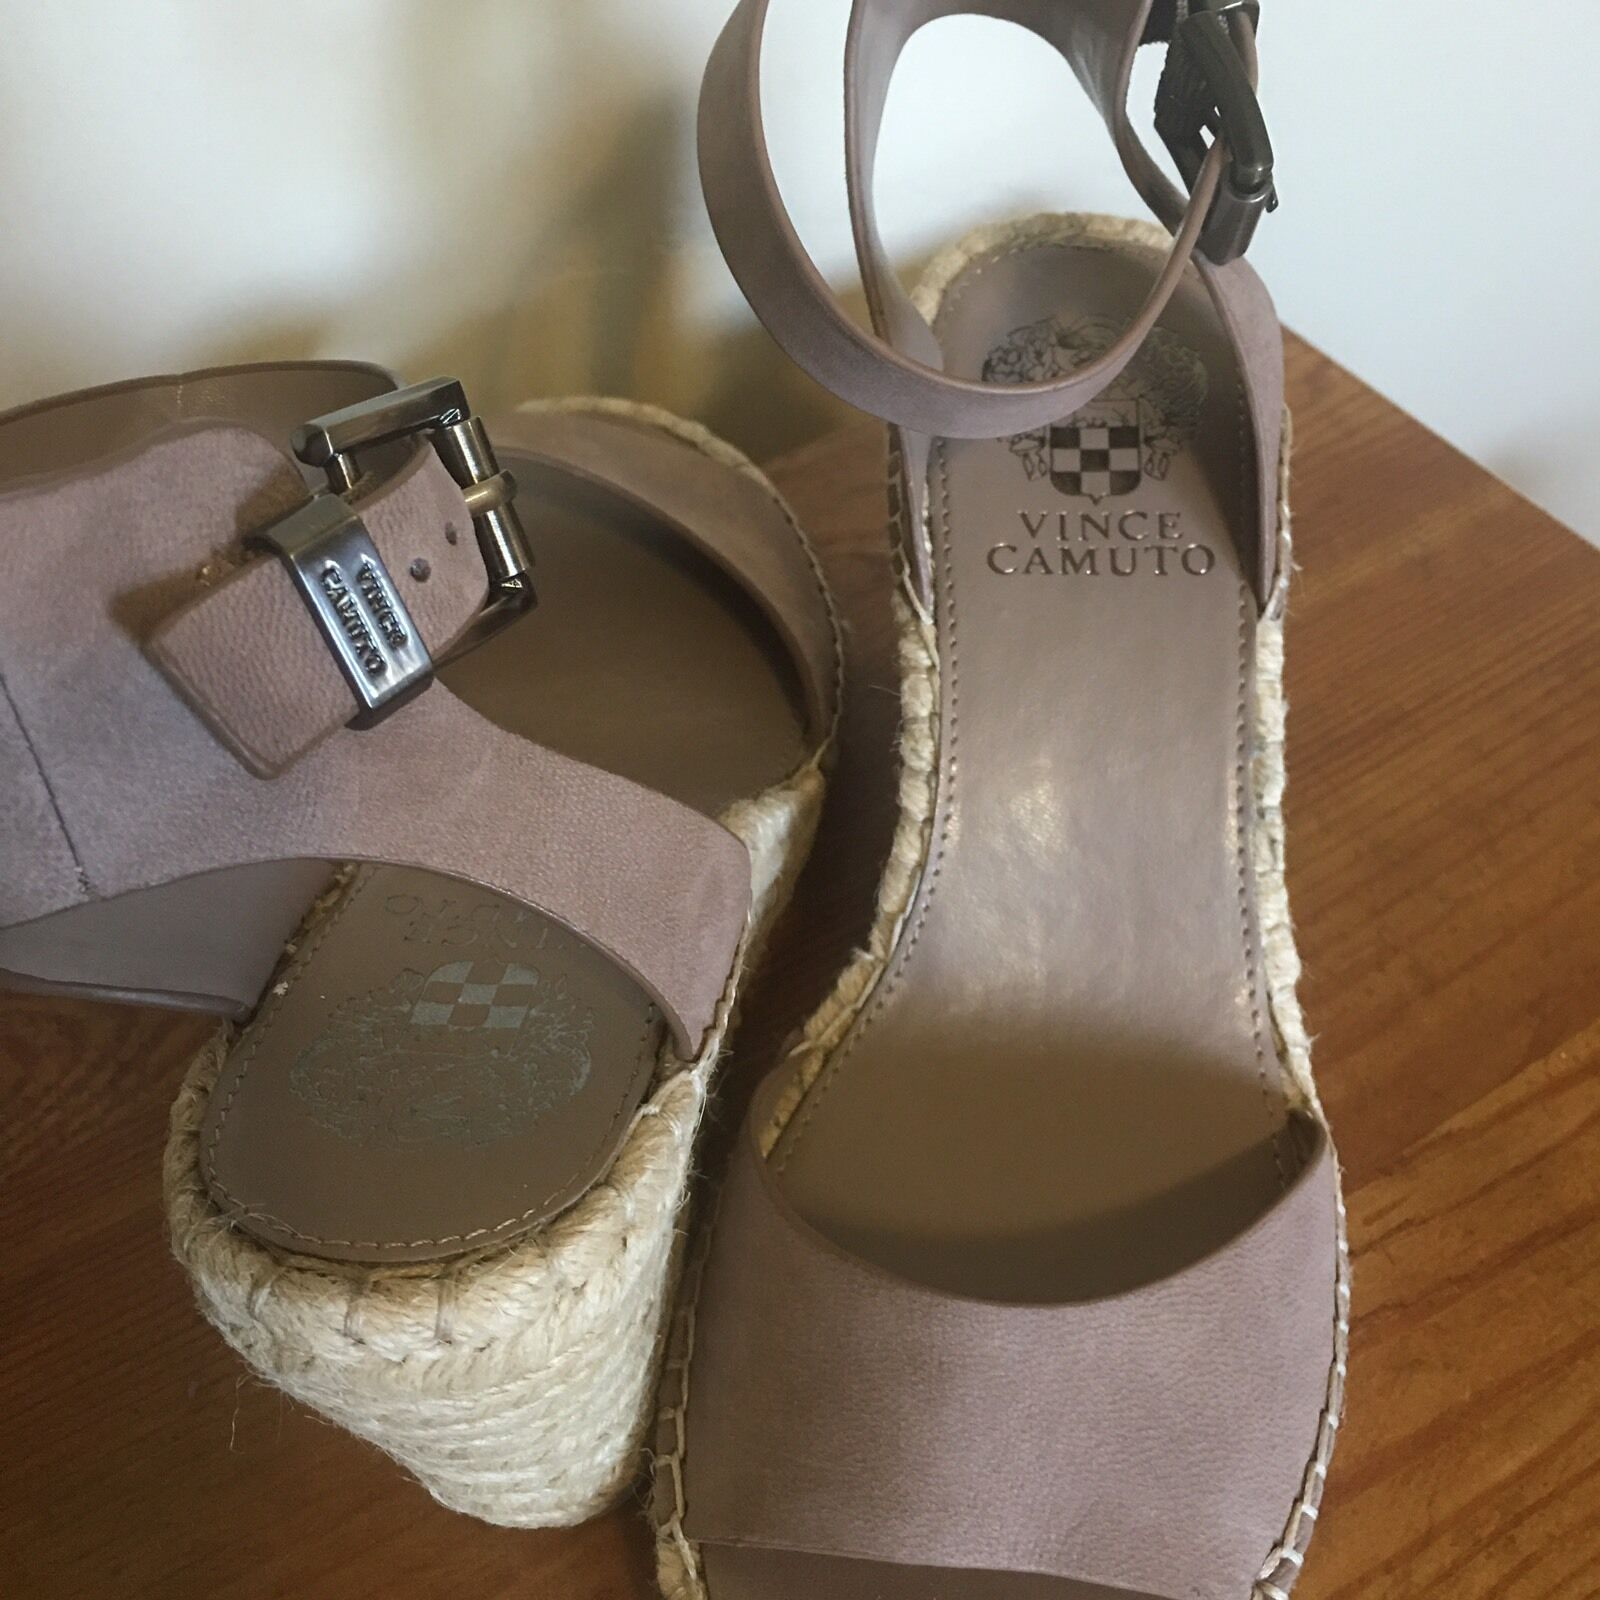 Vince Camuto Open Tagger Espadrille Leather Wedge Open Camuto Toe Taupe Sandal Heel 8.5 660ffe